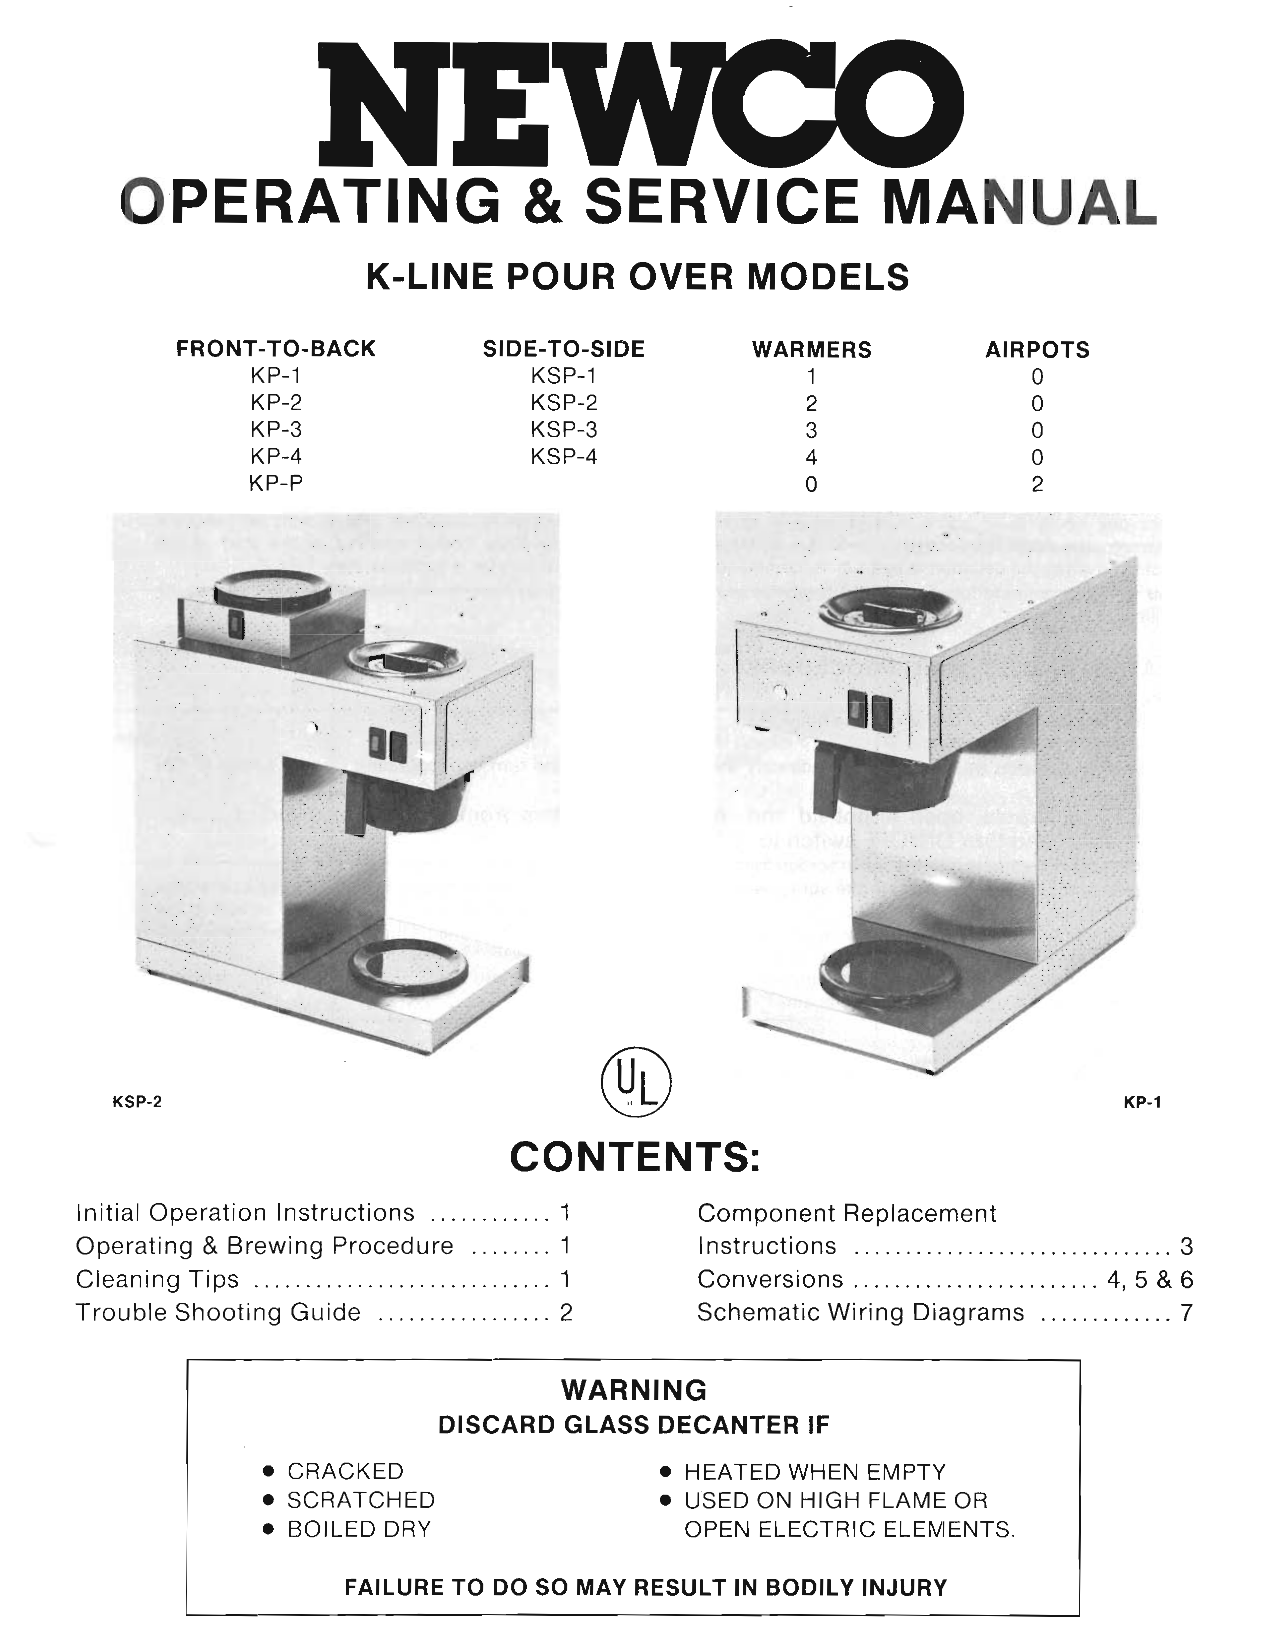 Newco Coffee Maker Service Manual : Download free pdf for newco ak ld coffee maker manual